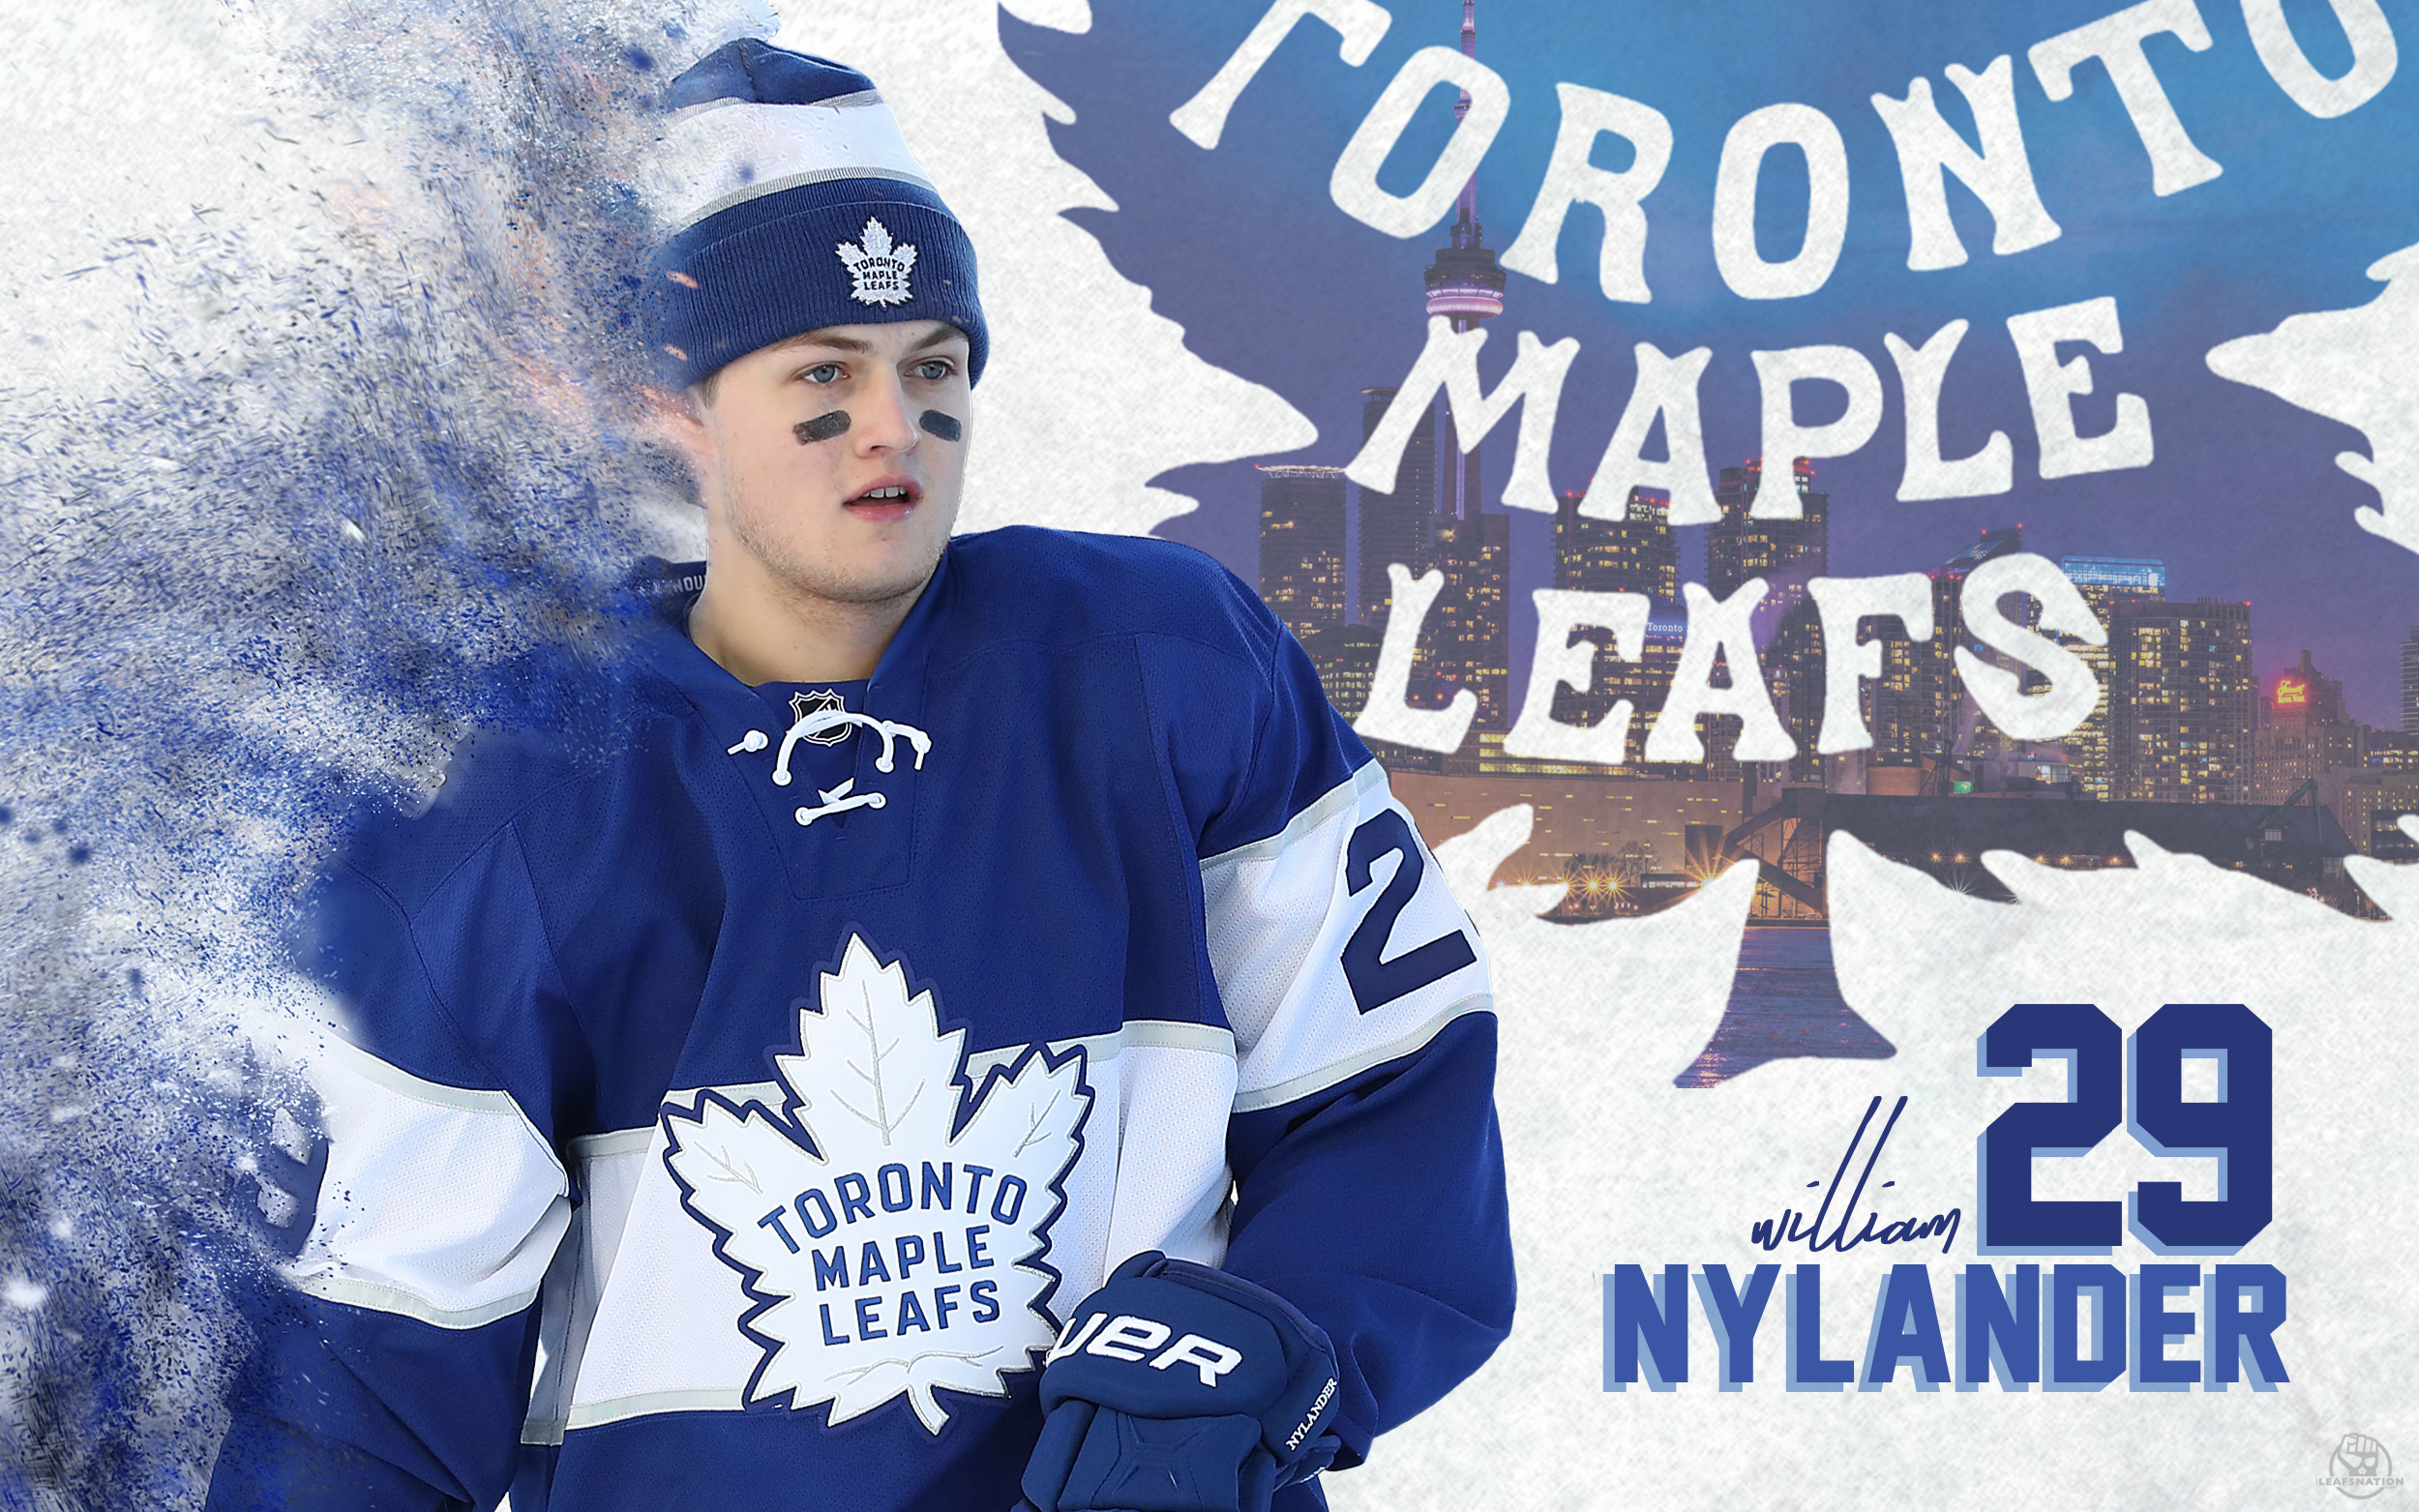 Wallpaper Wednesday William Nylander Edition Theleafsnation